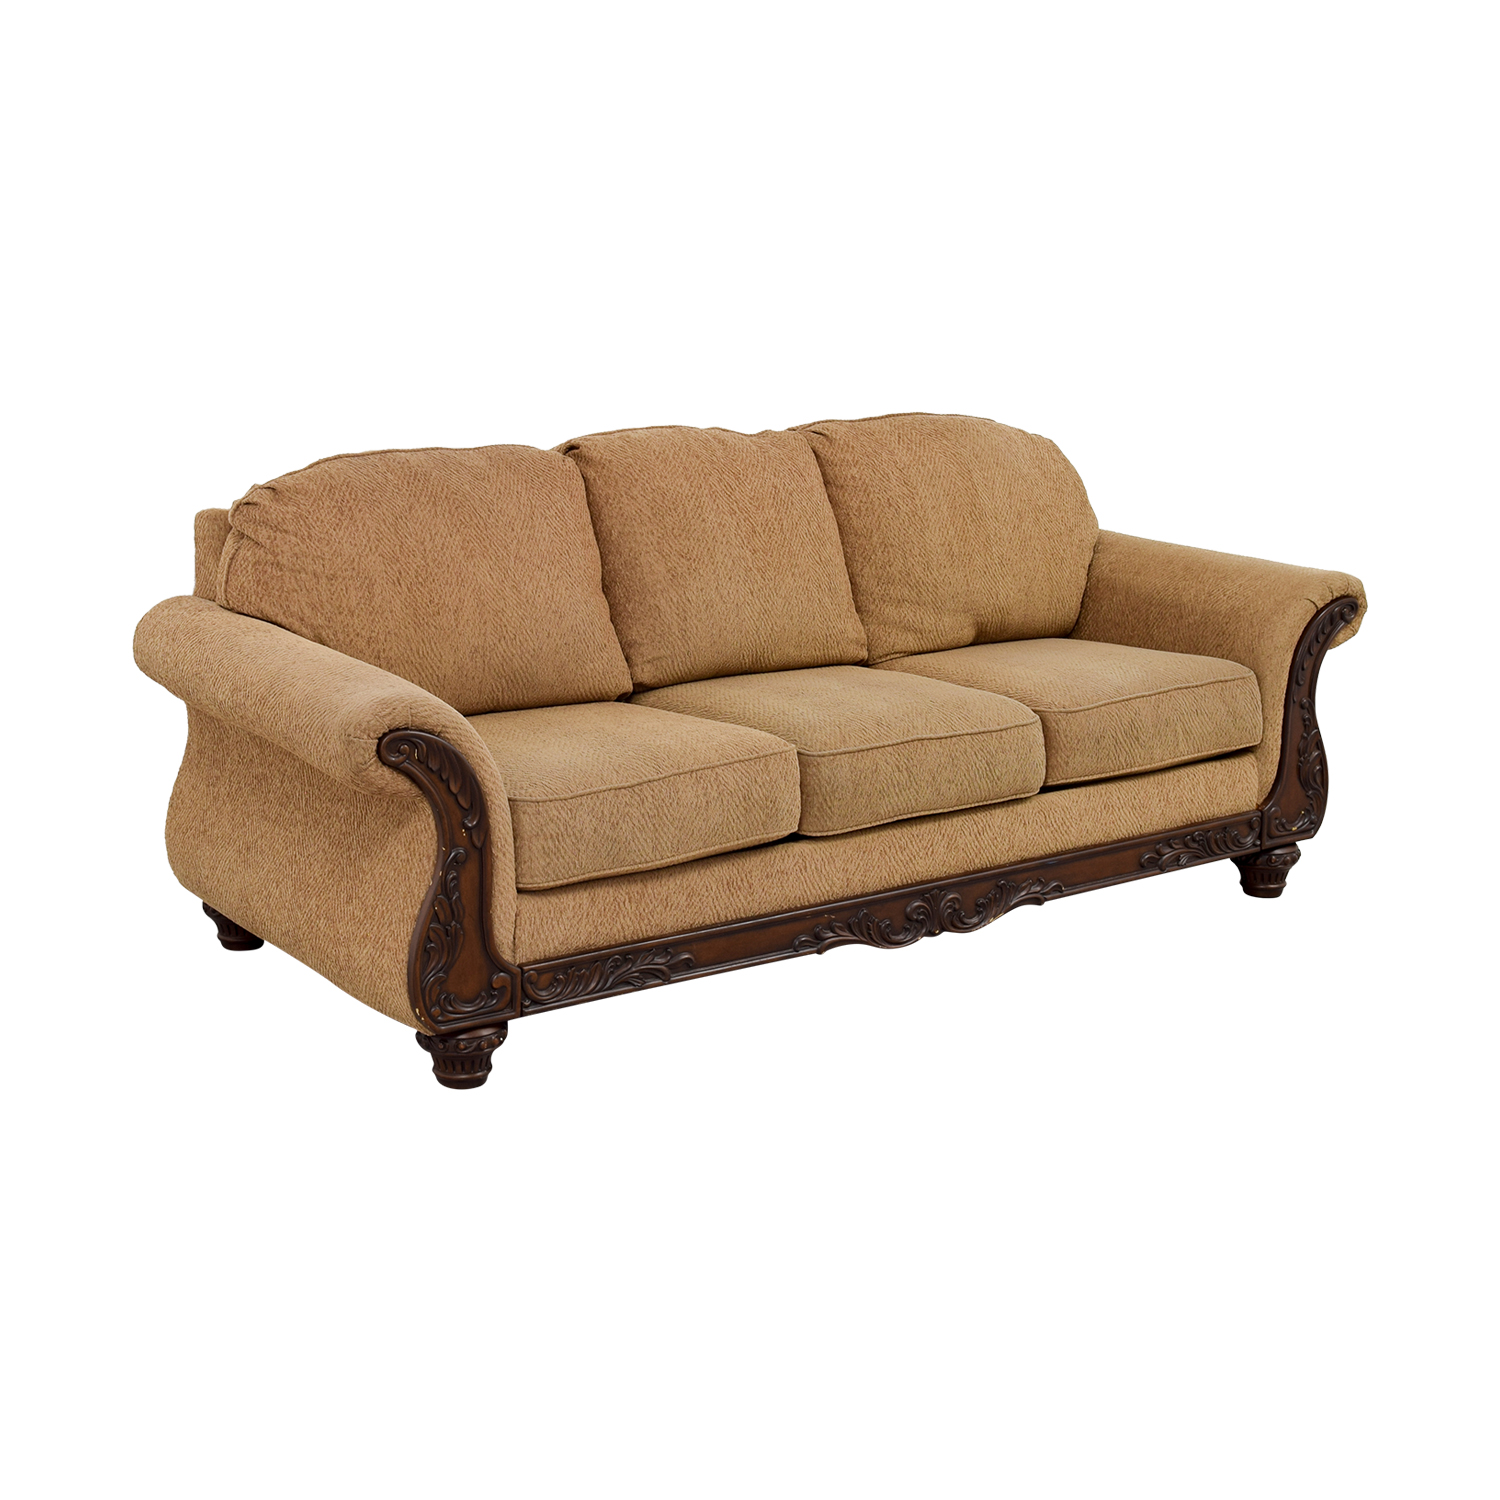 50% OFF Haverty s Haverty s Gold Carved Wood Couch Sofas